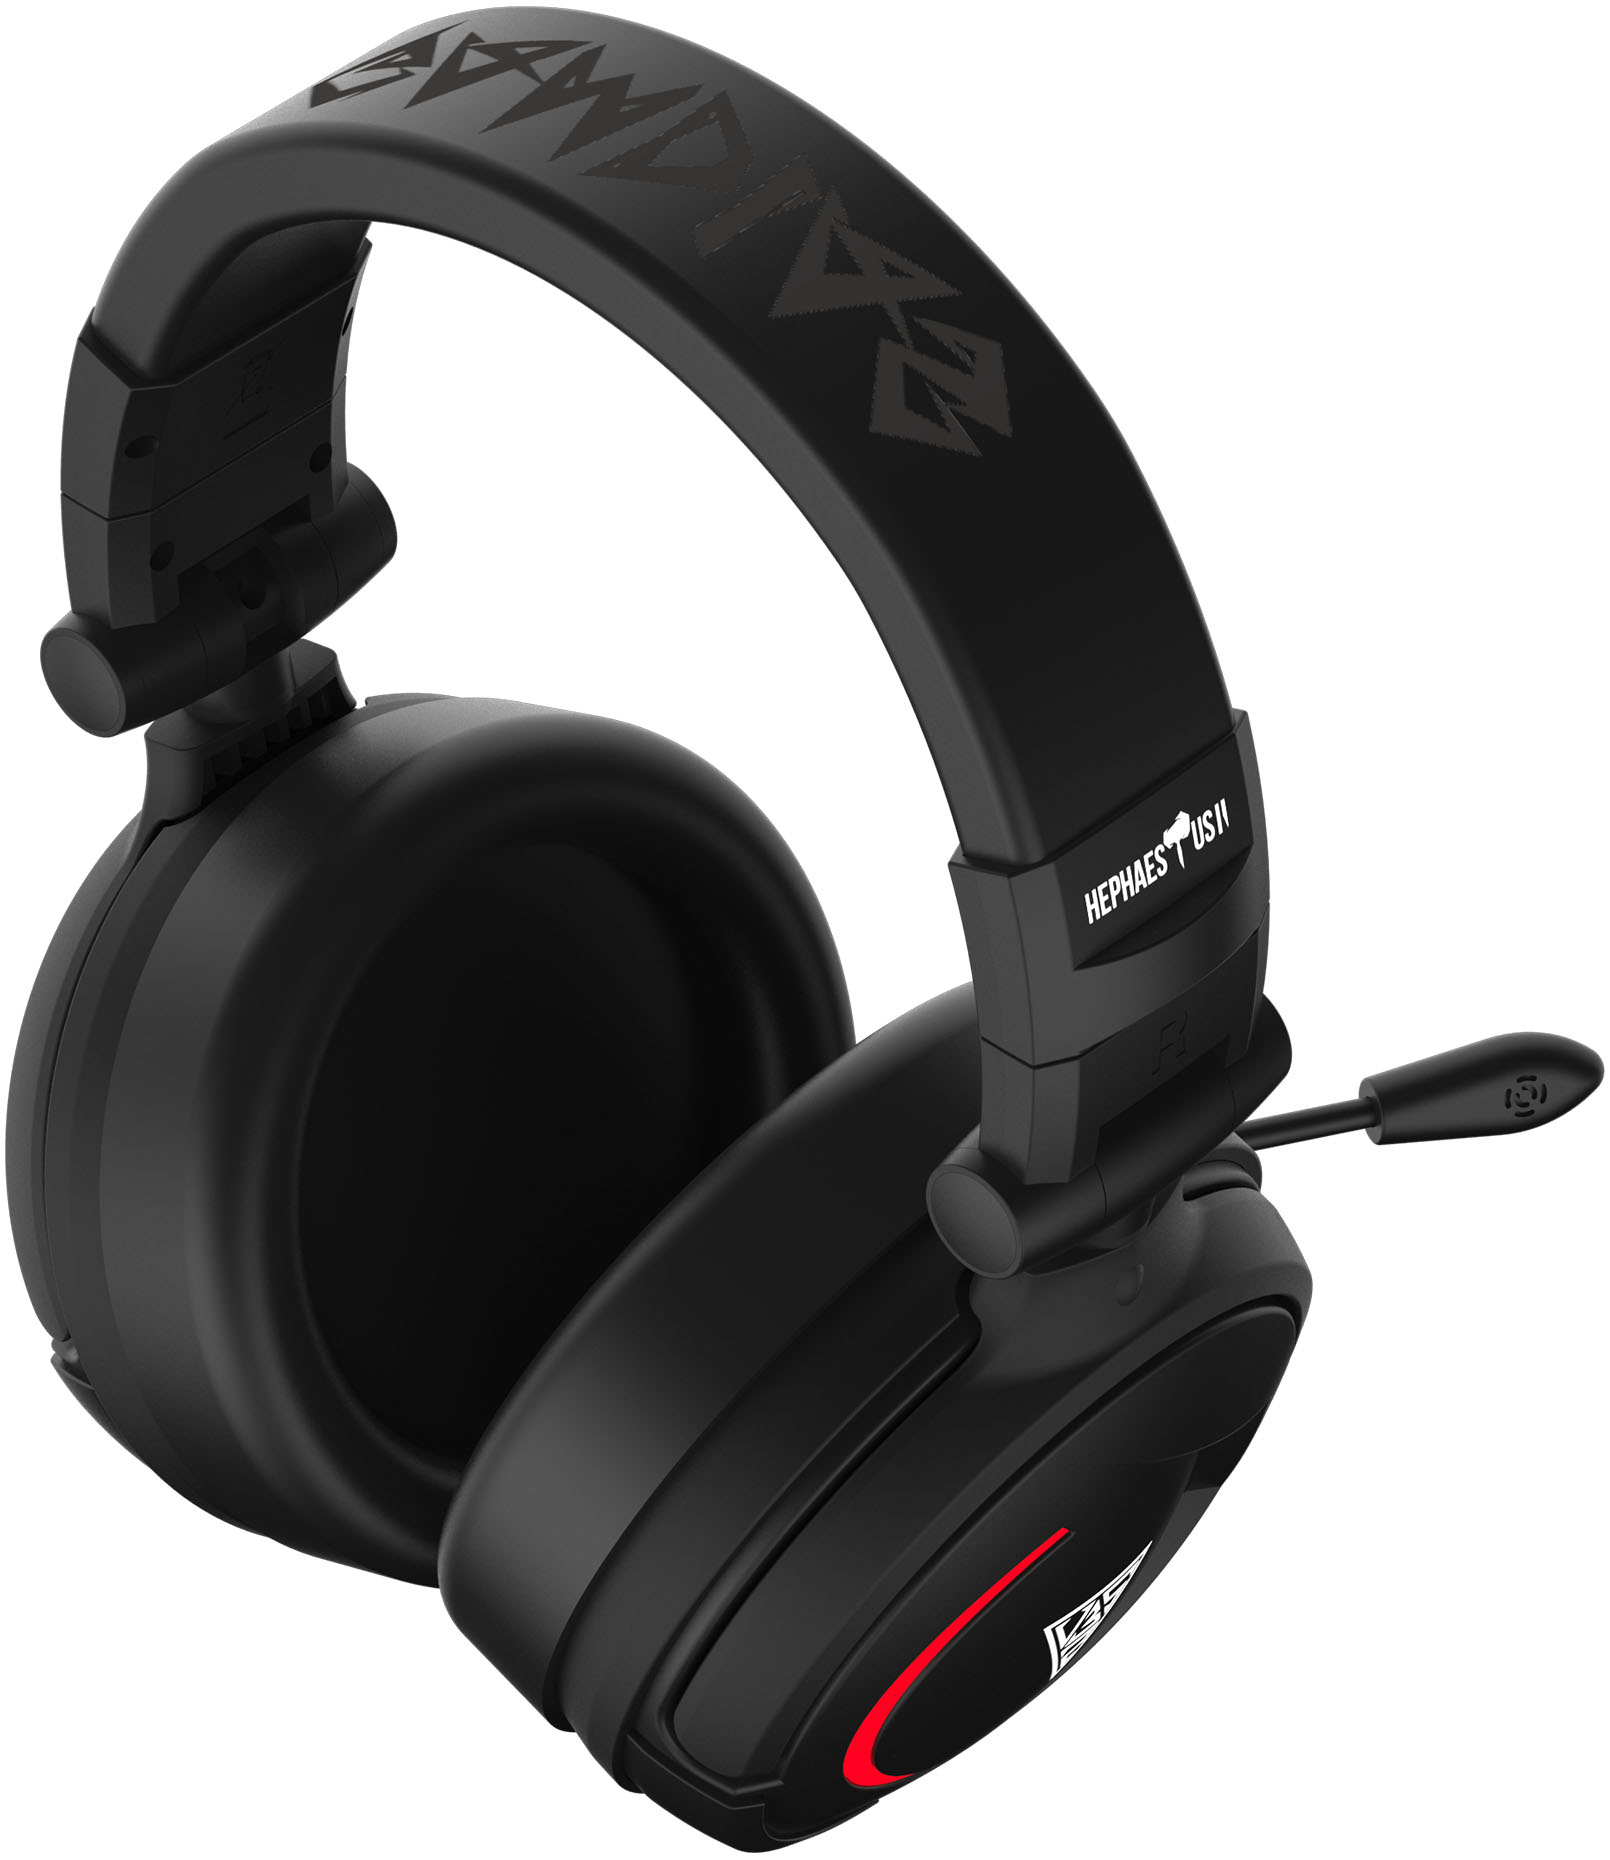 Gamdias Hephaestus V2 Gaming Headset Stock Image